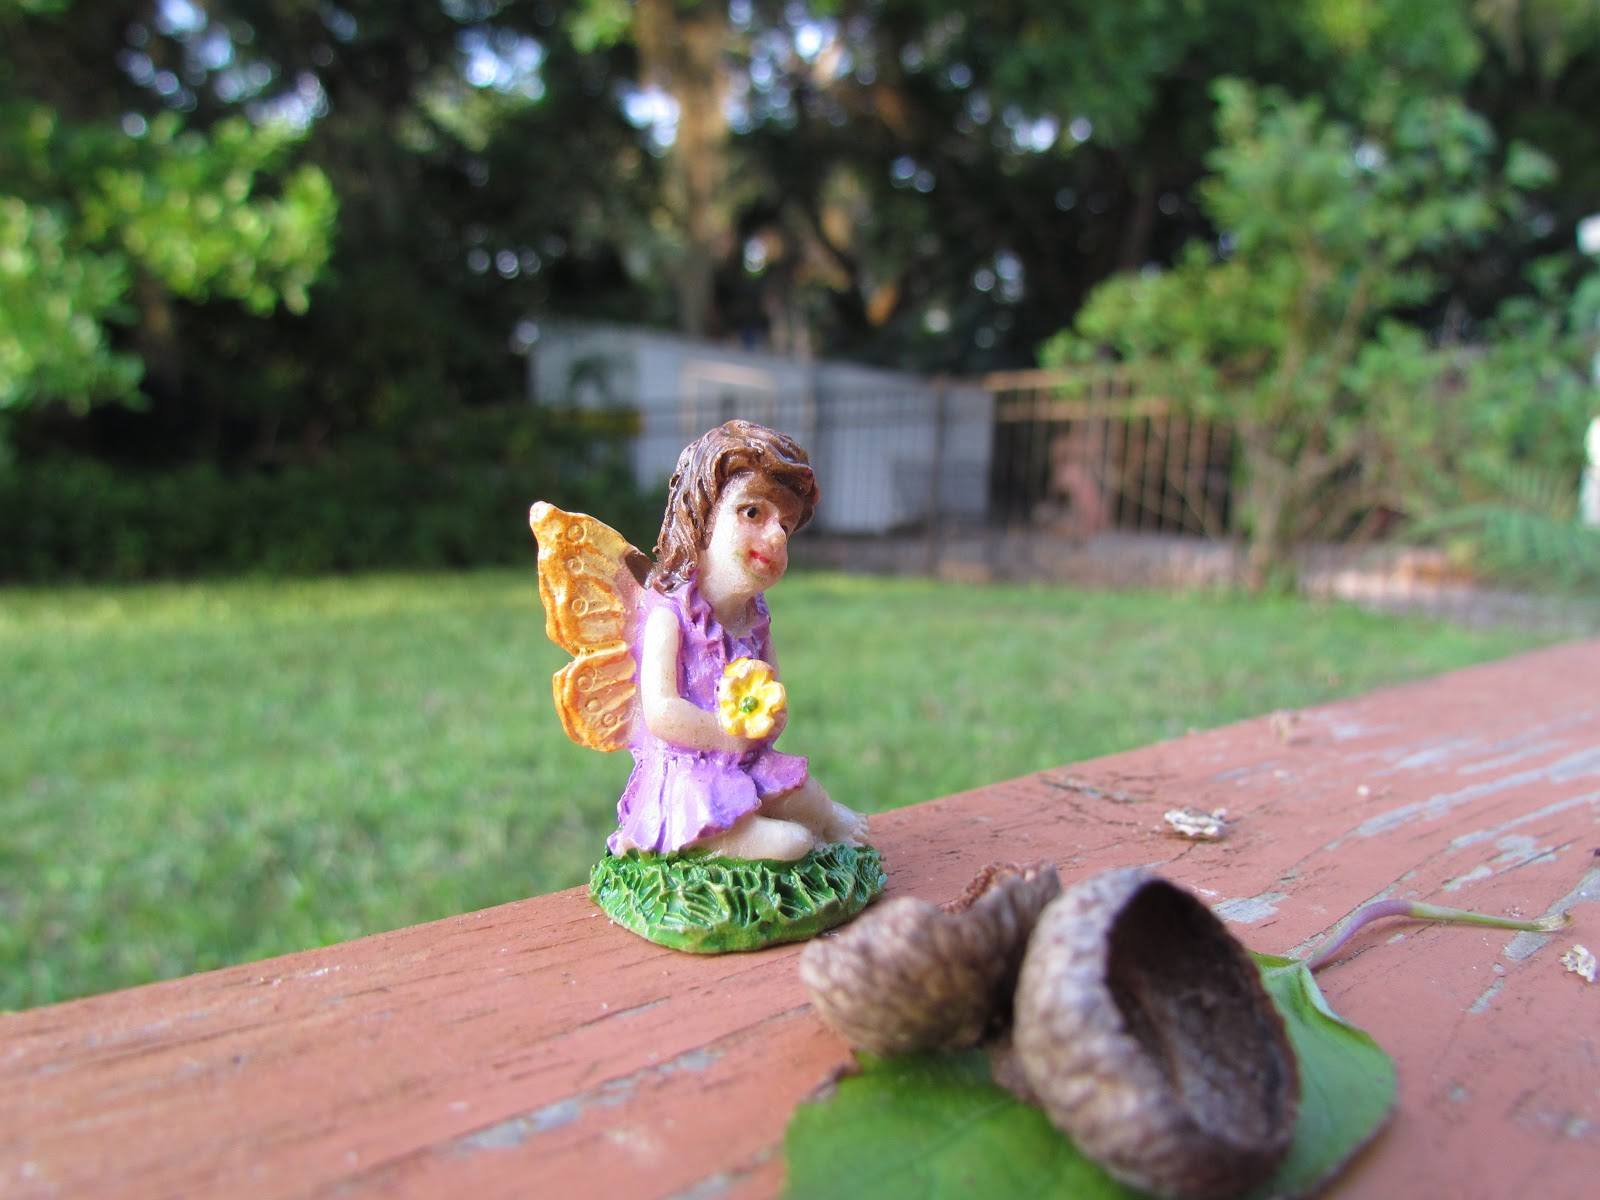 A Tiny Kneeling Fairy Statue in Purple Dress Watering a Garden in the Backyard in Nature